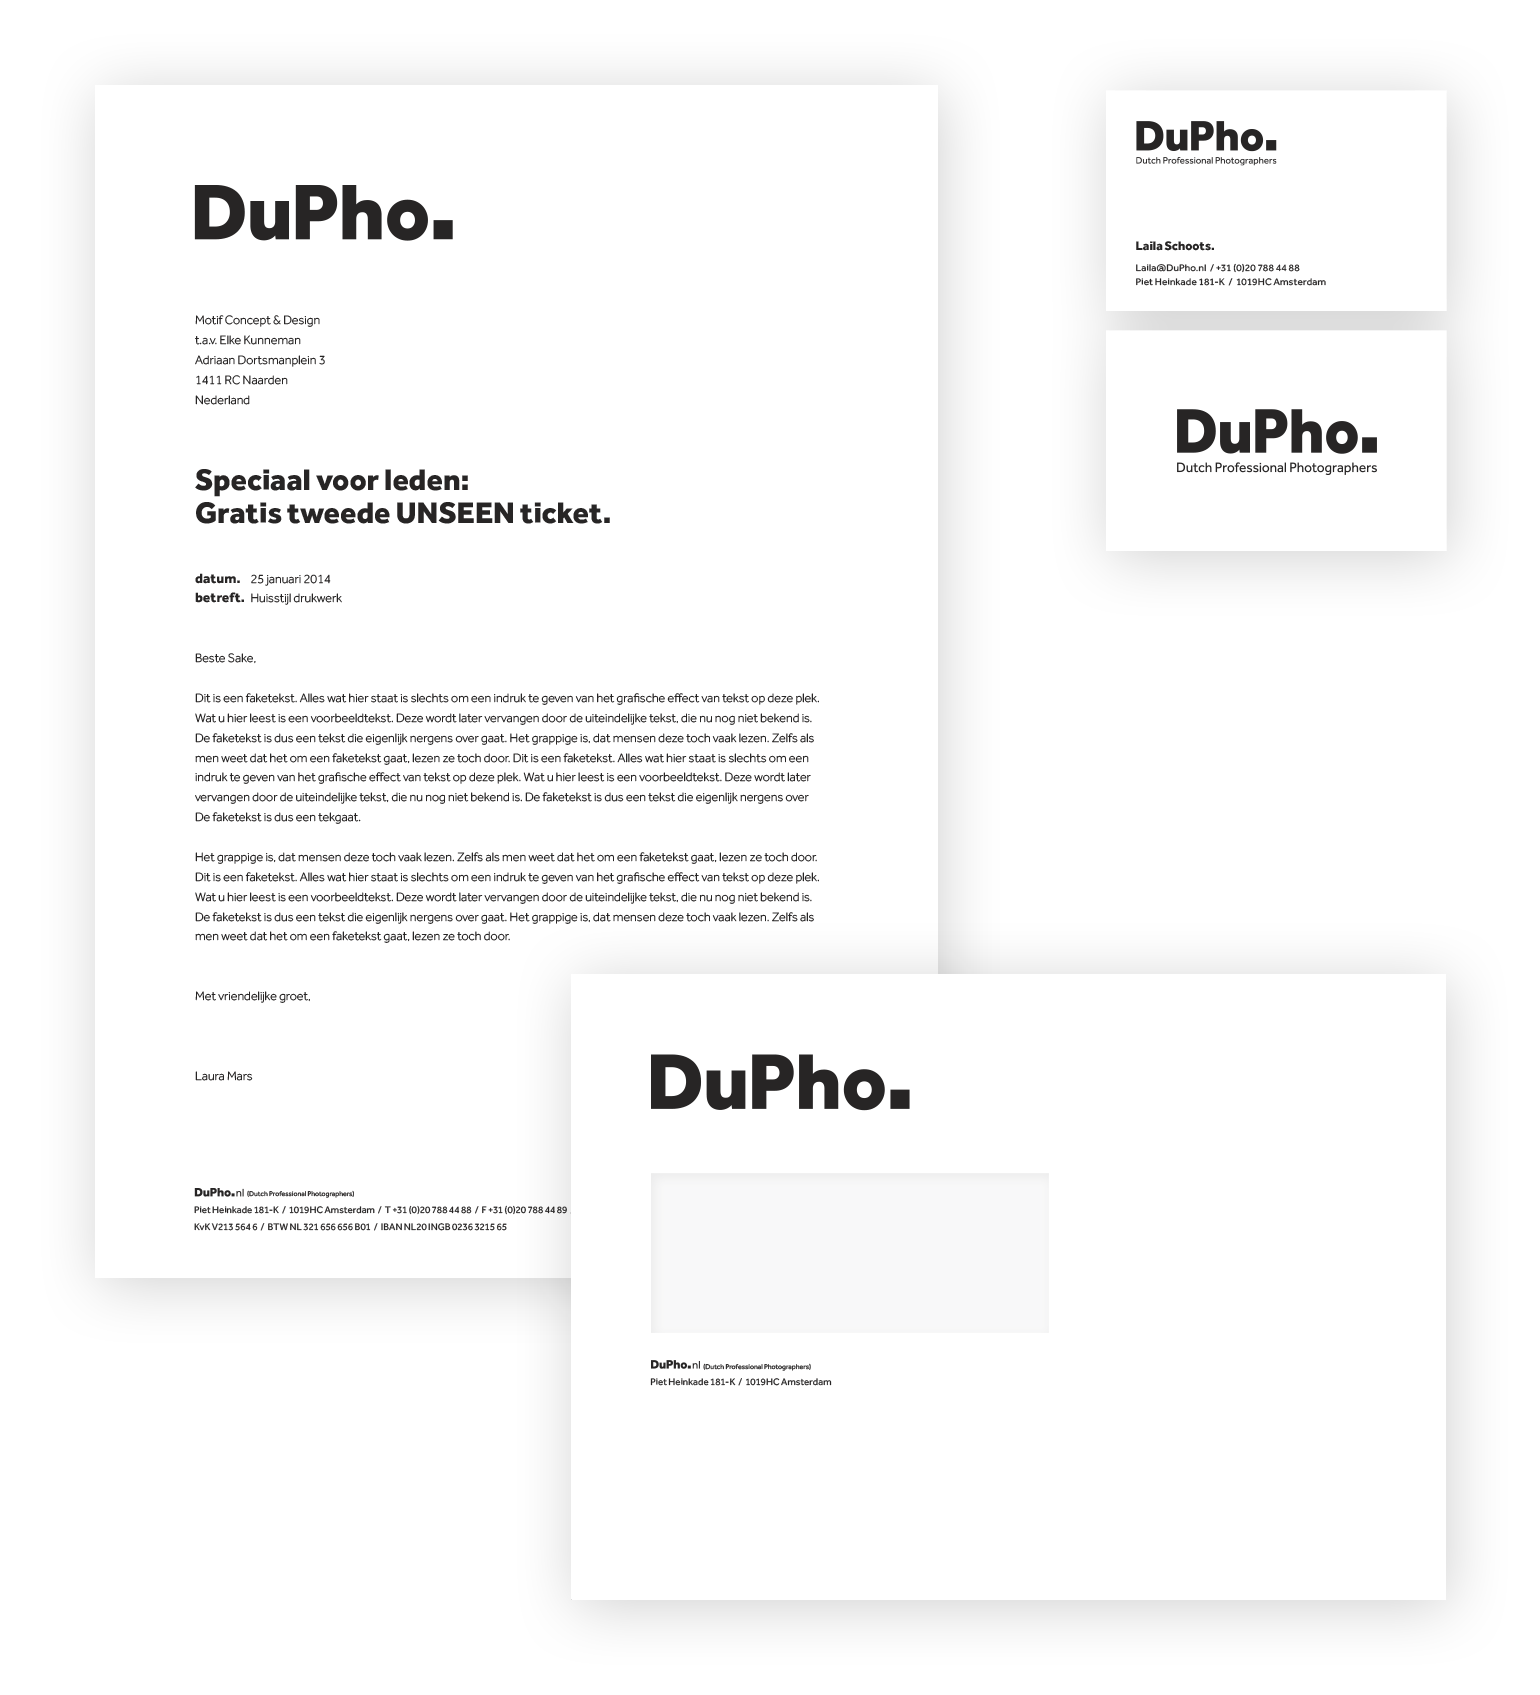 DuPho_Corporate identity_1540px_MOTIF